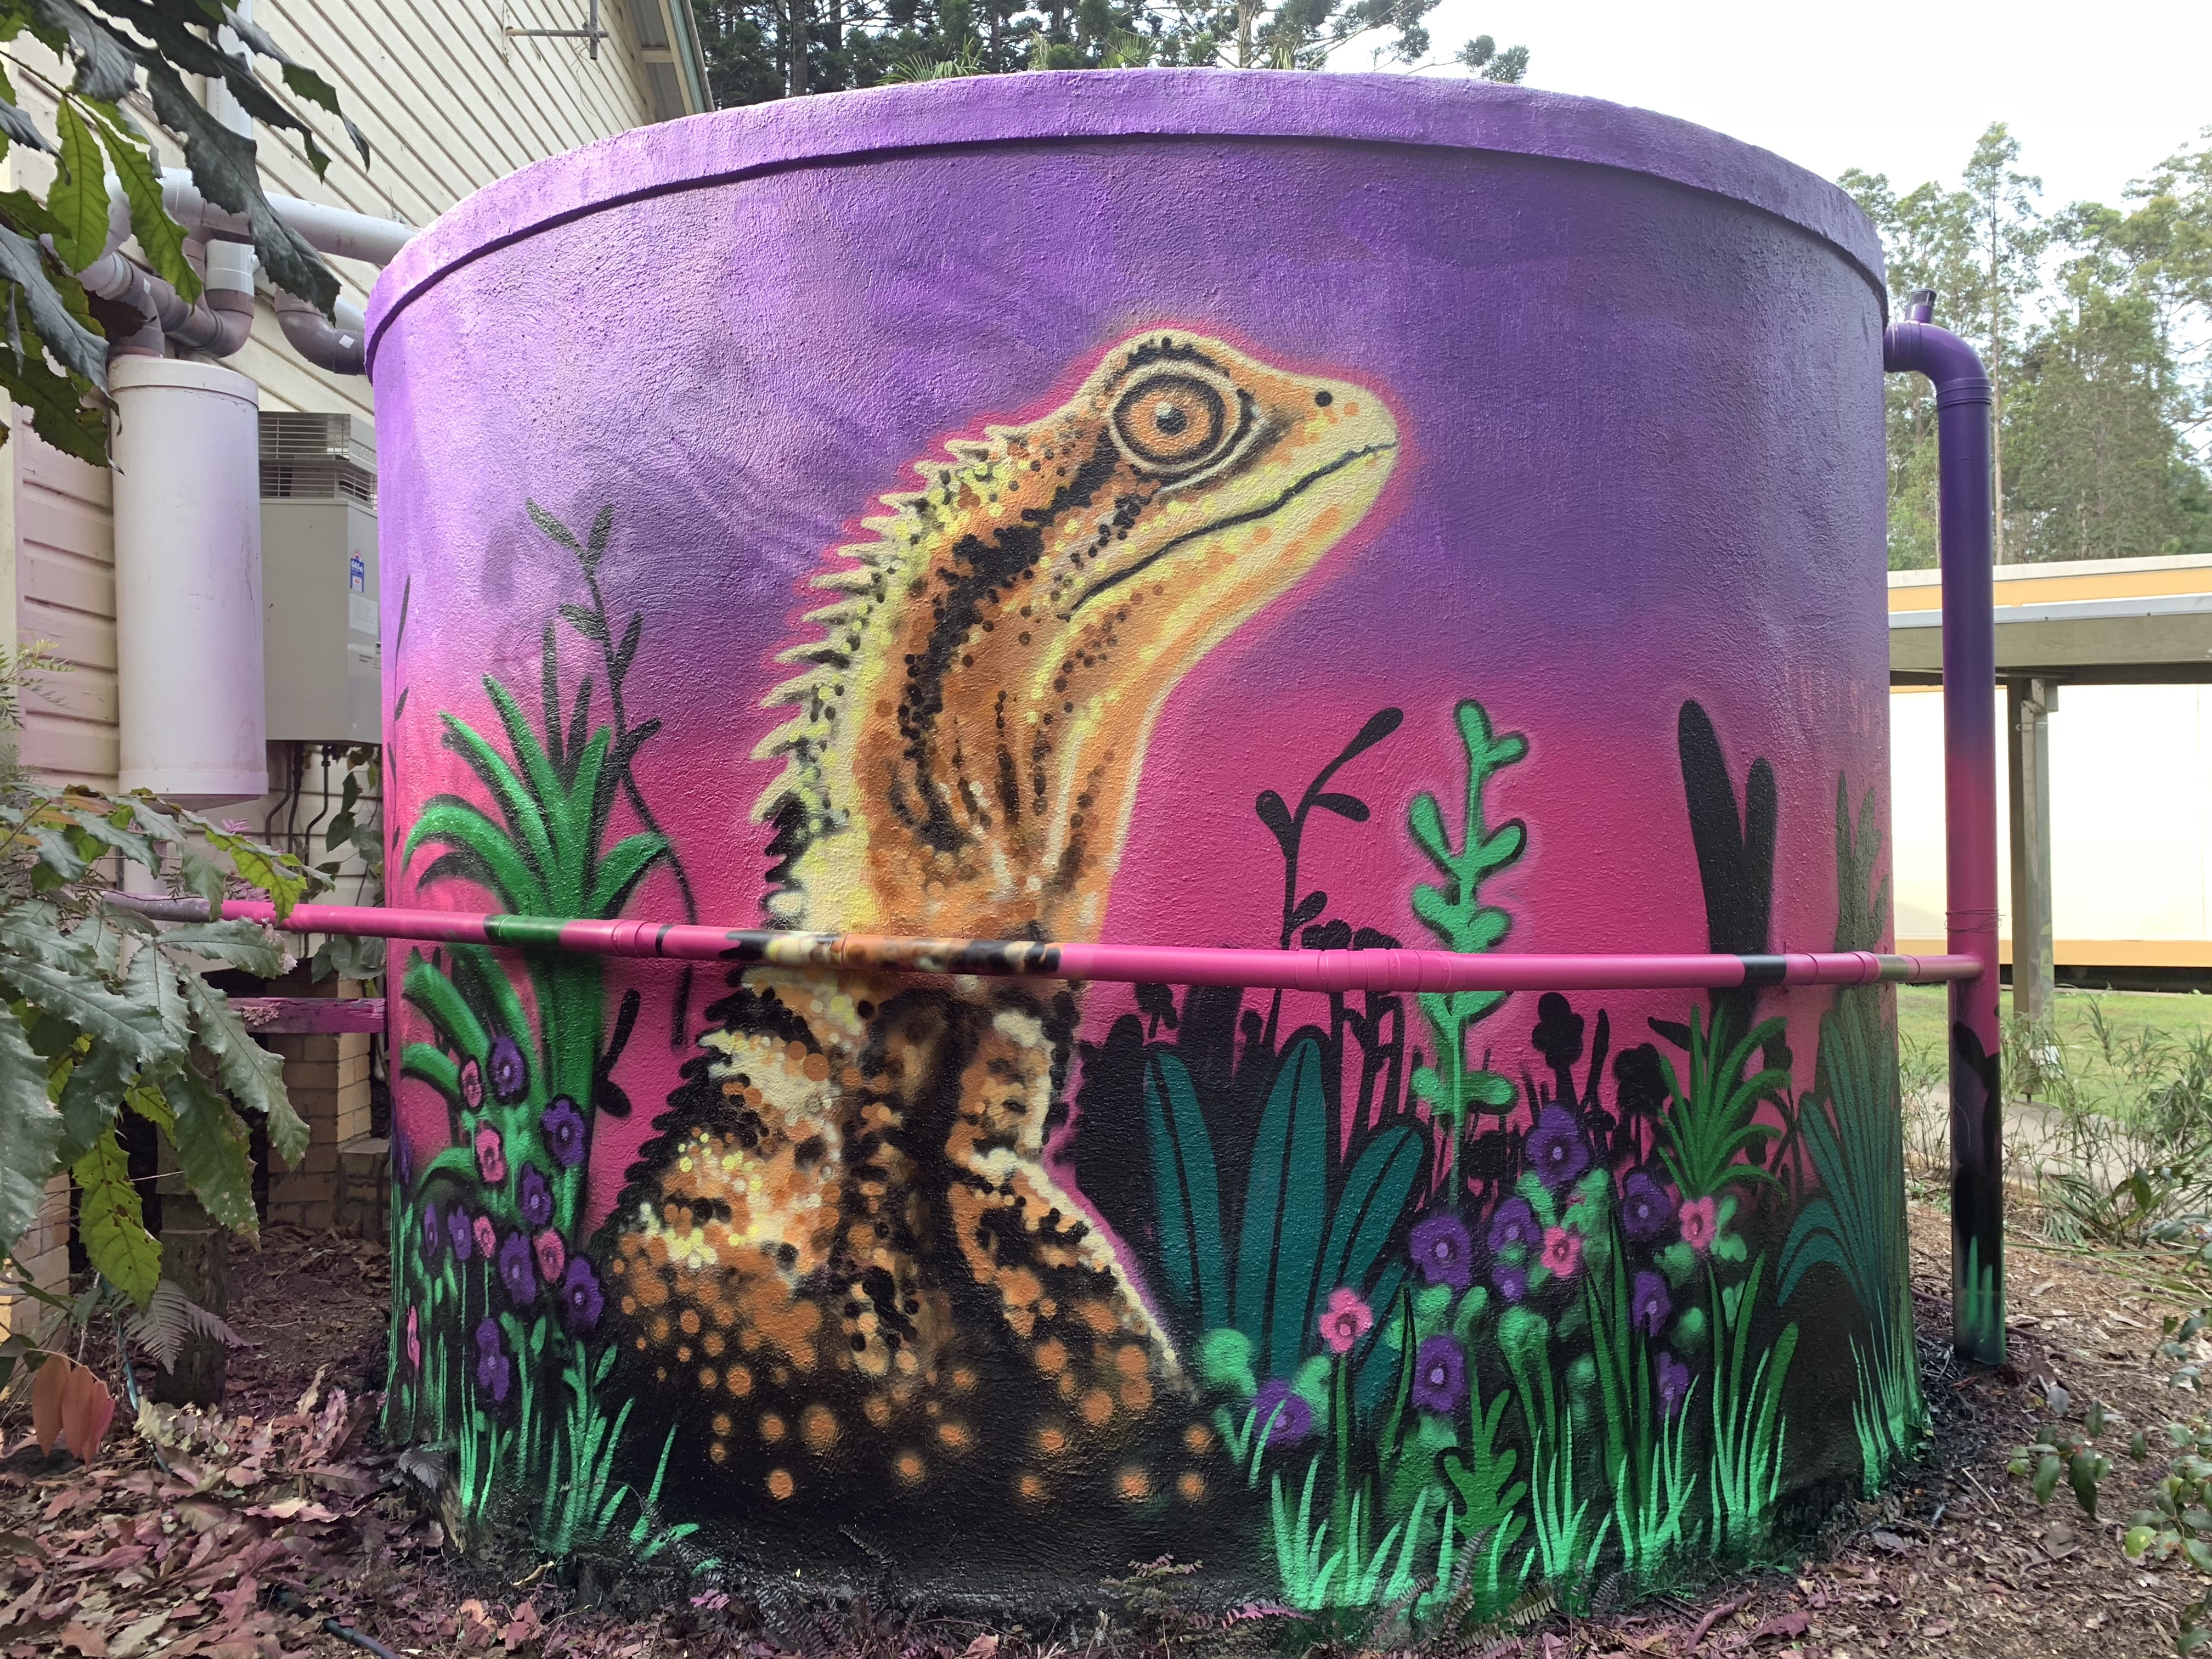 water dragon / Larnook public school